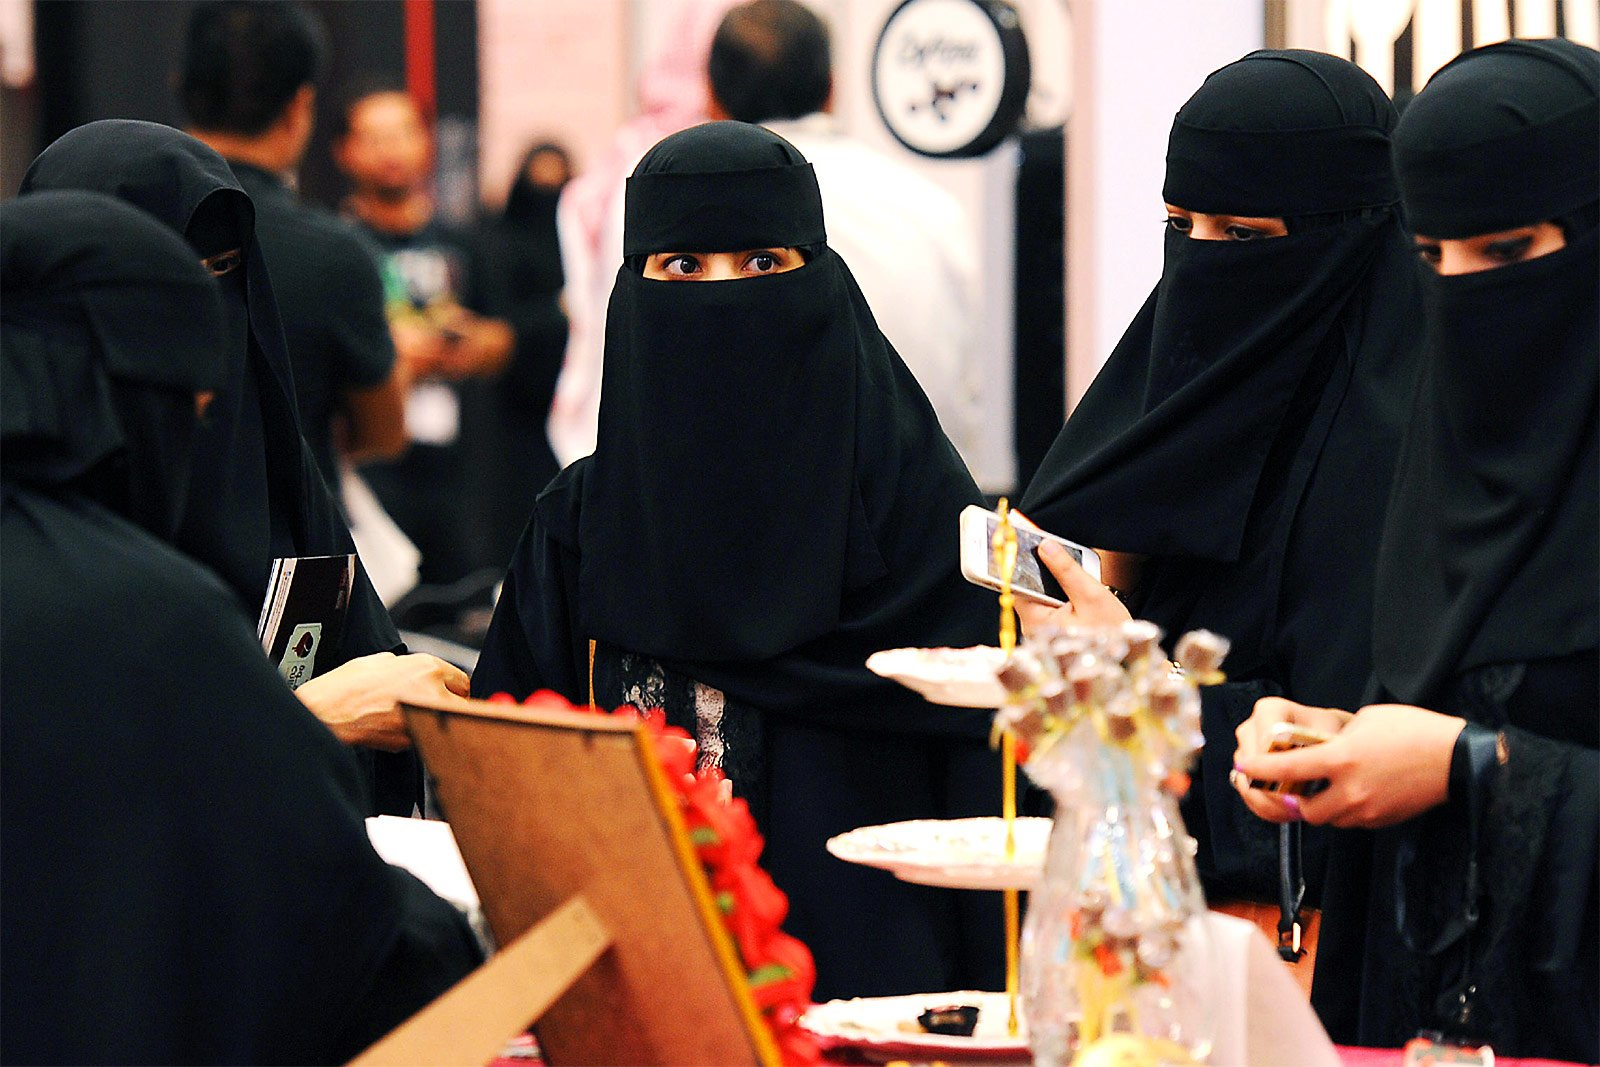 How to try on niqab in Dubai